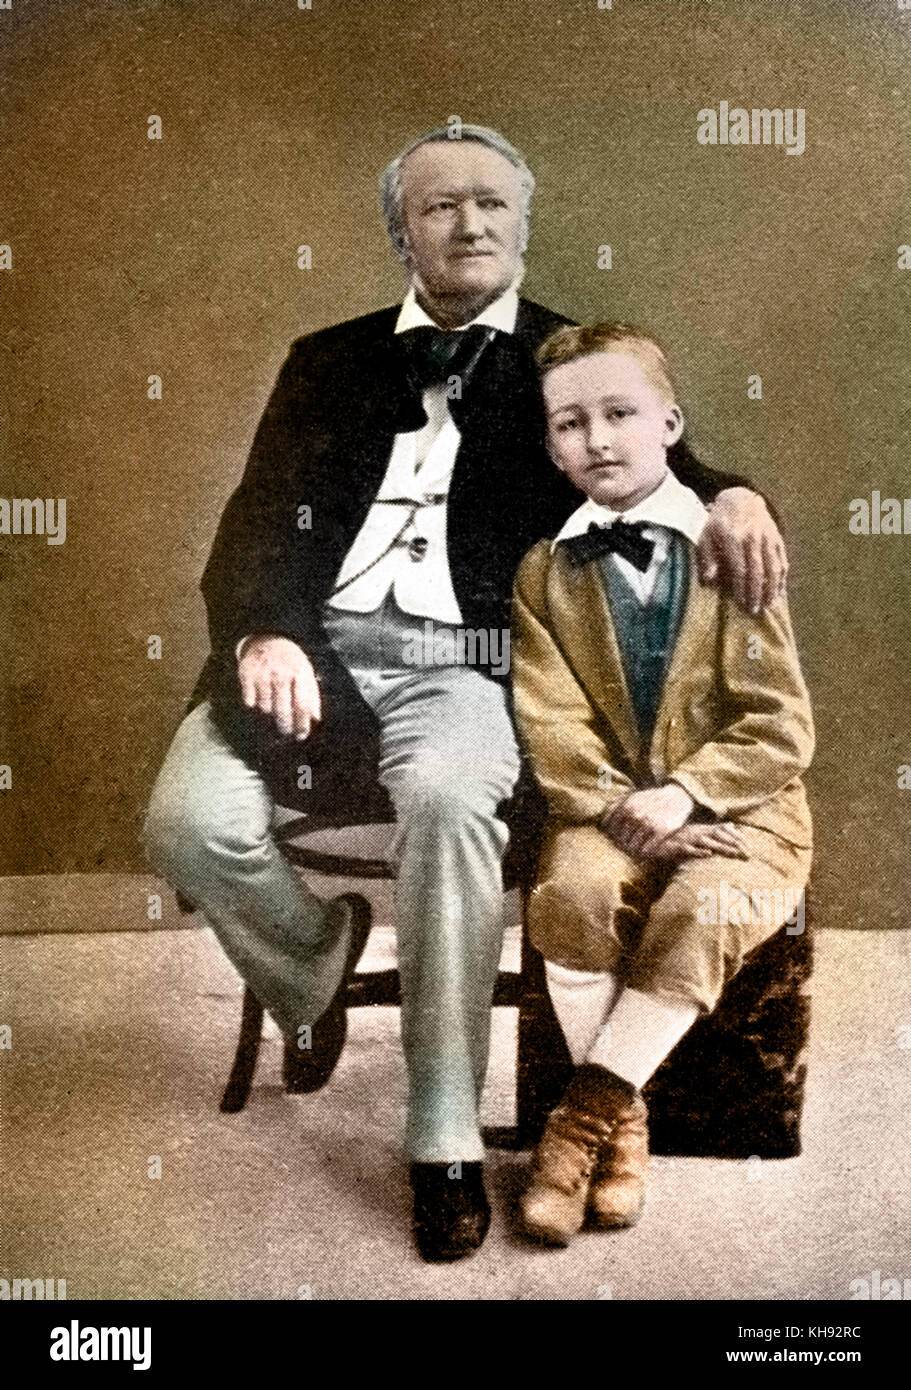 Richard Wagner with his son Siegfried as a young boy. RW: German composer & author, 22 May 1813 - 13 February 1883. Stock Photo